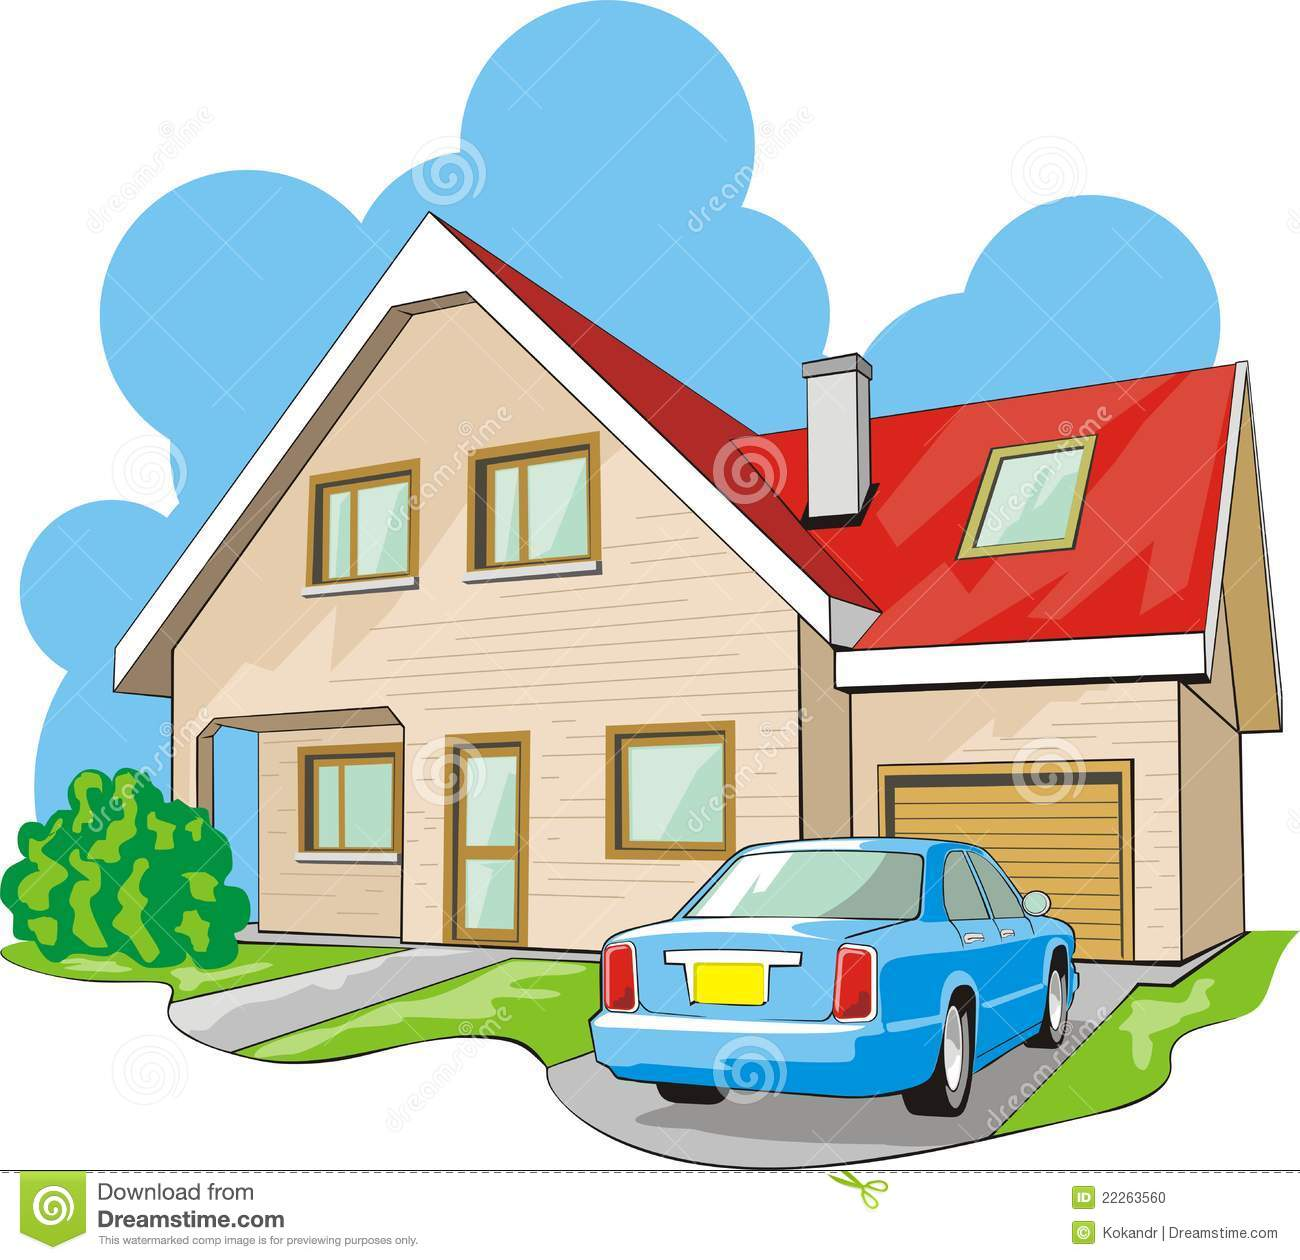 Garage clipart. House with